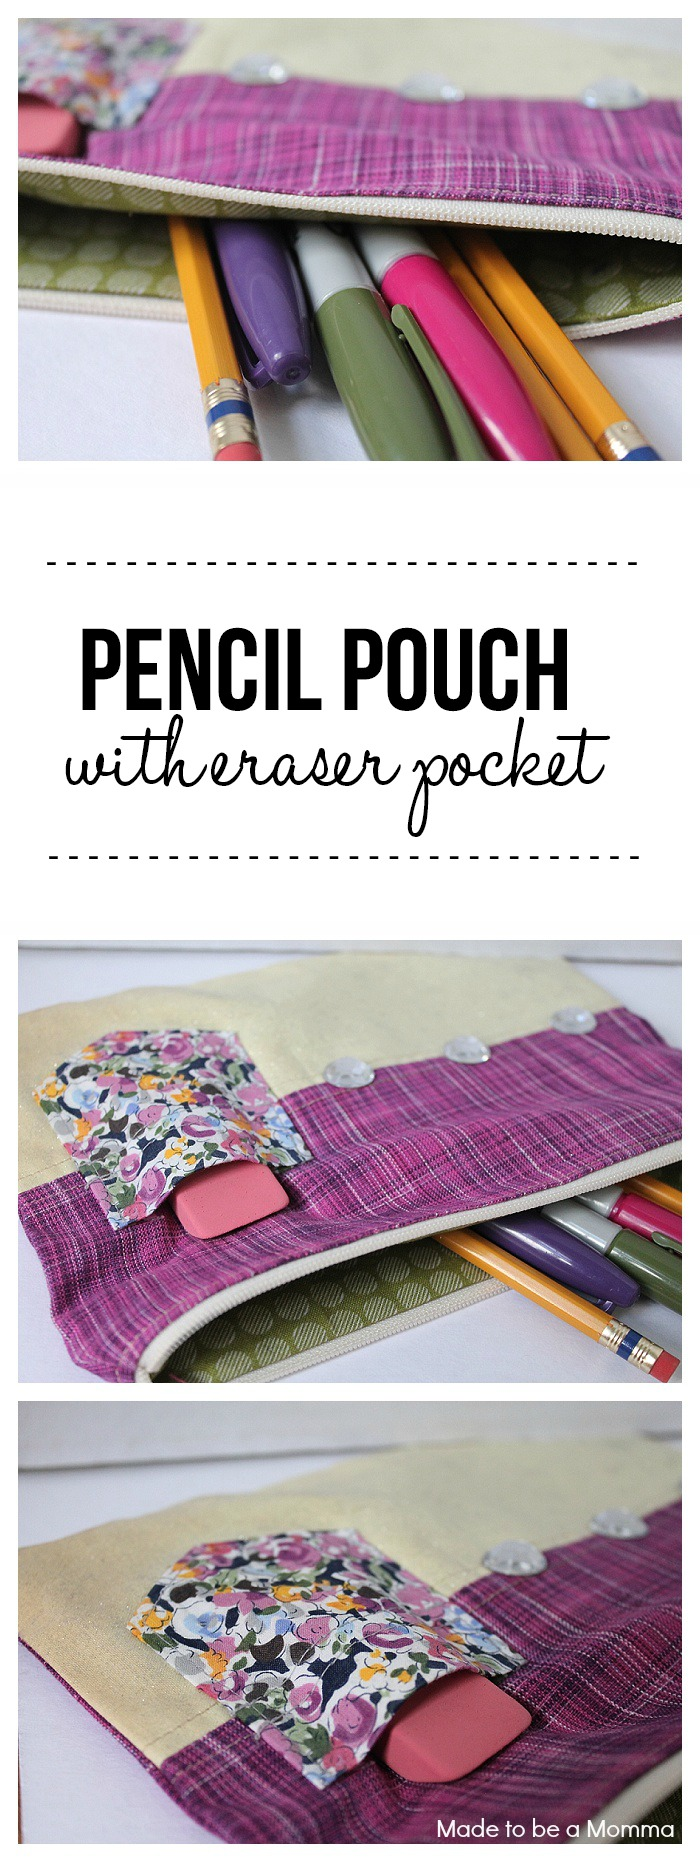 Pencil Pouch with Eraser Pocket